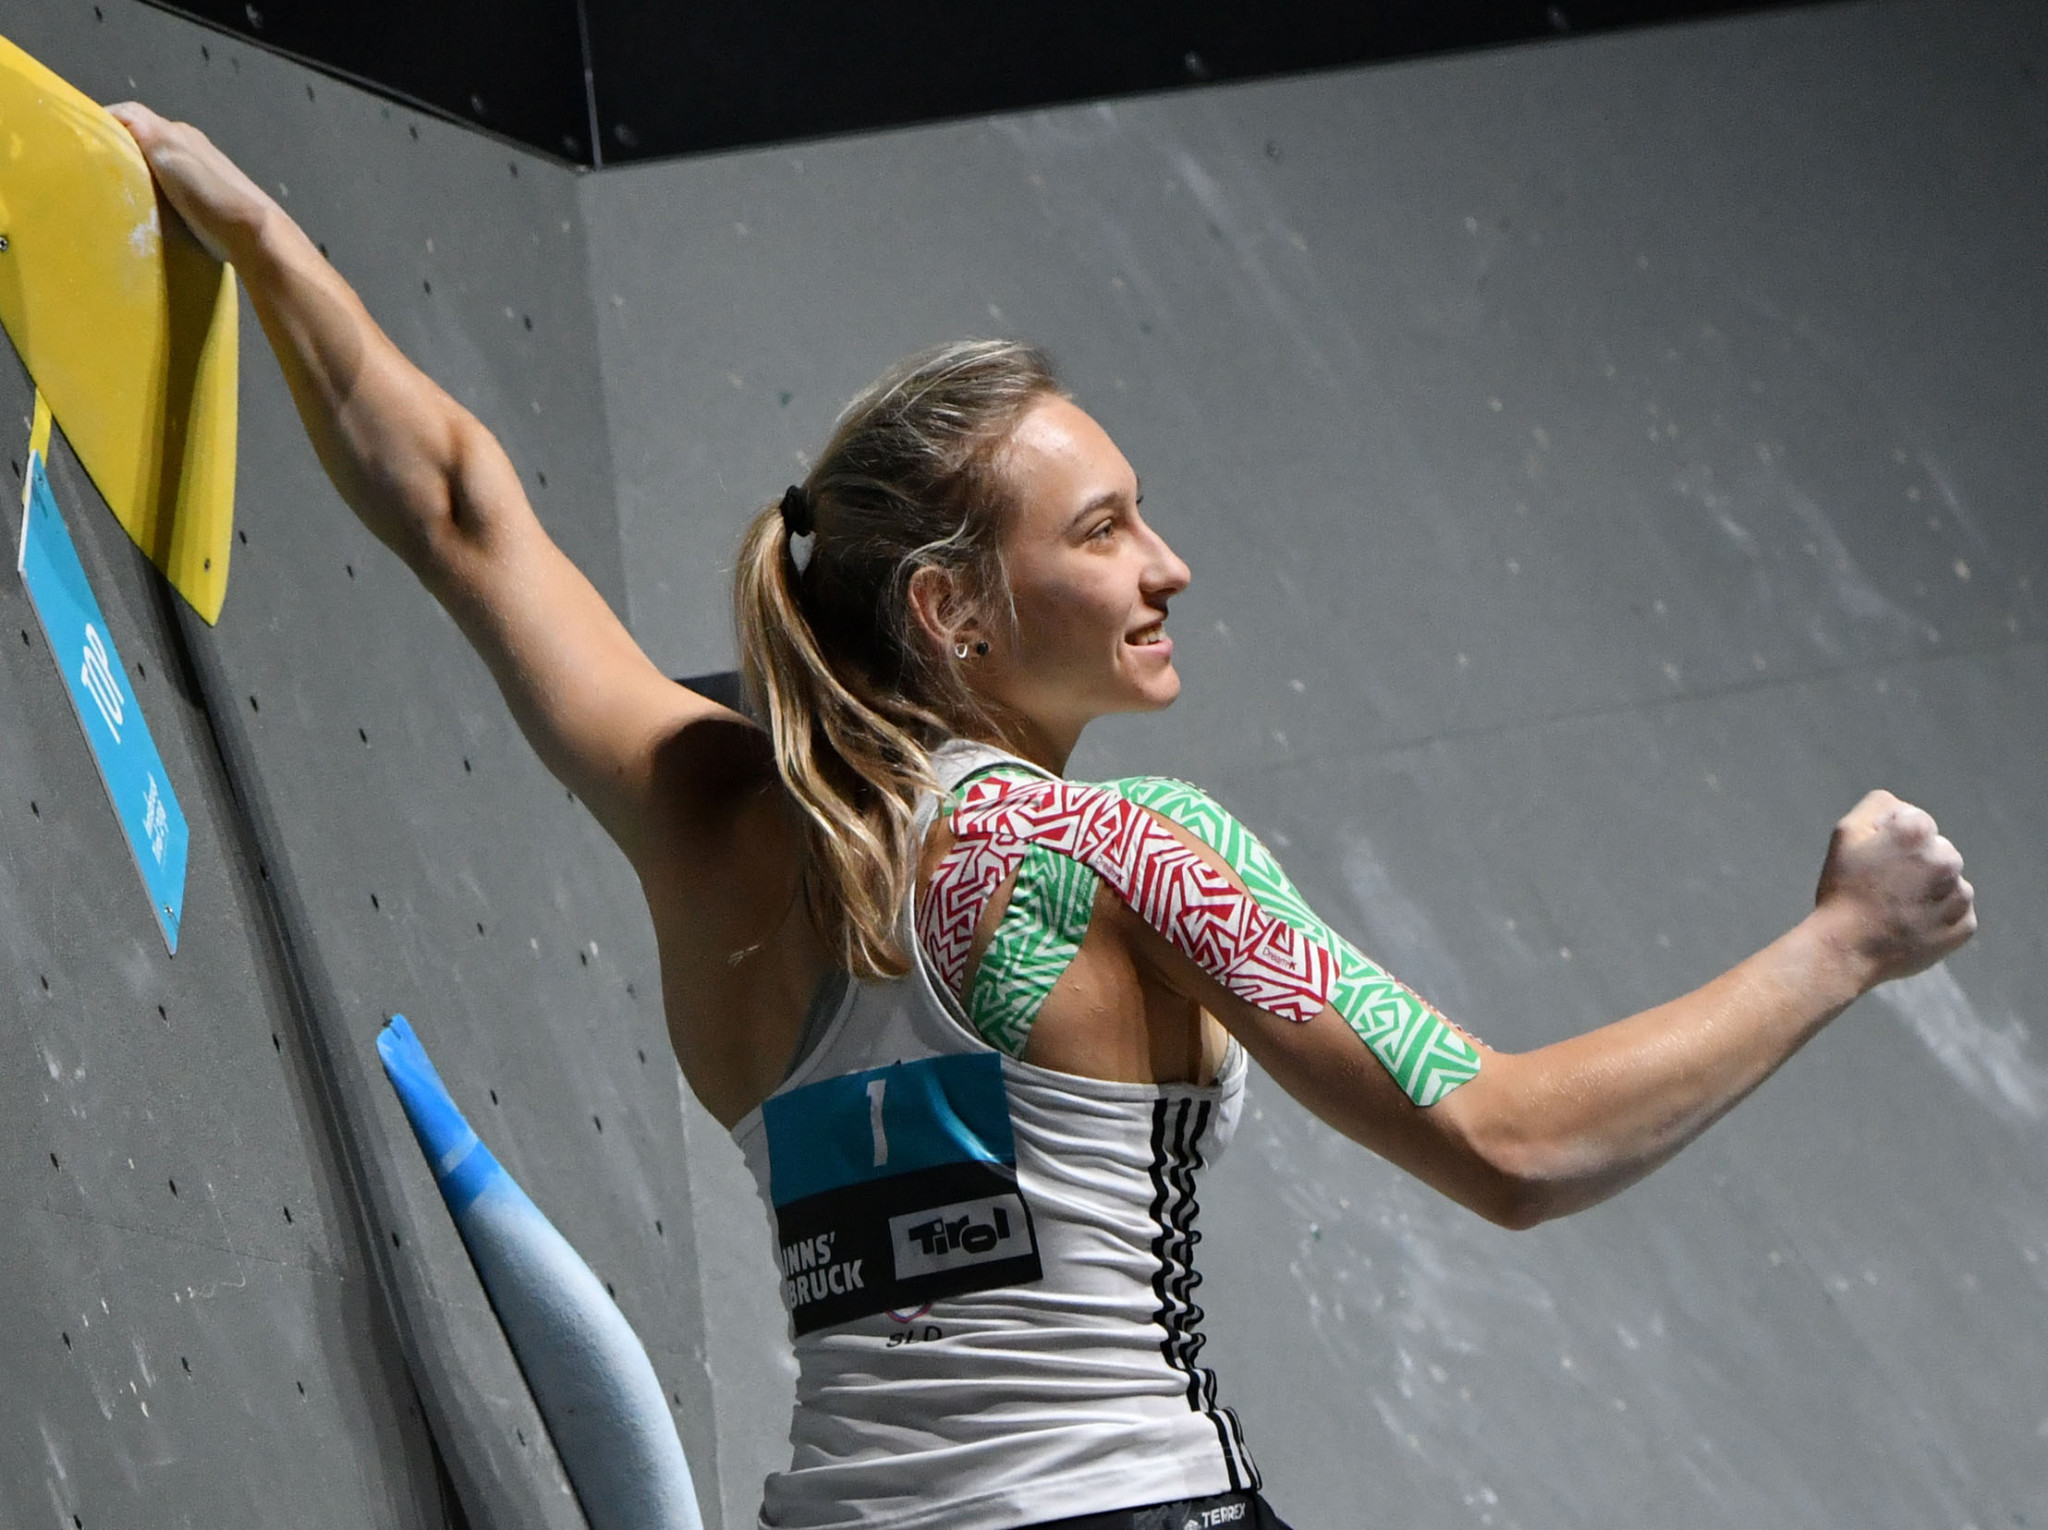 Slovenia's Janja Garnbret won the women's bouldering event at the IFSC Climbing World Cup ©Getty Images